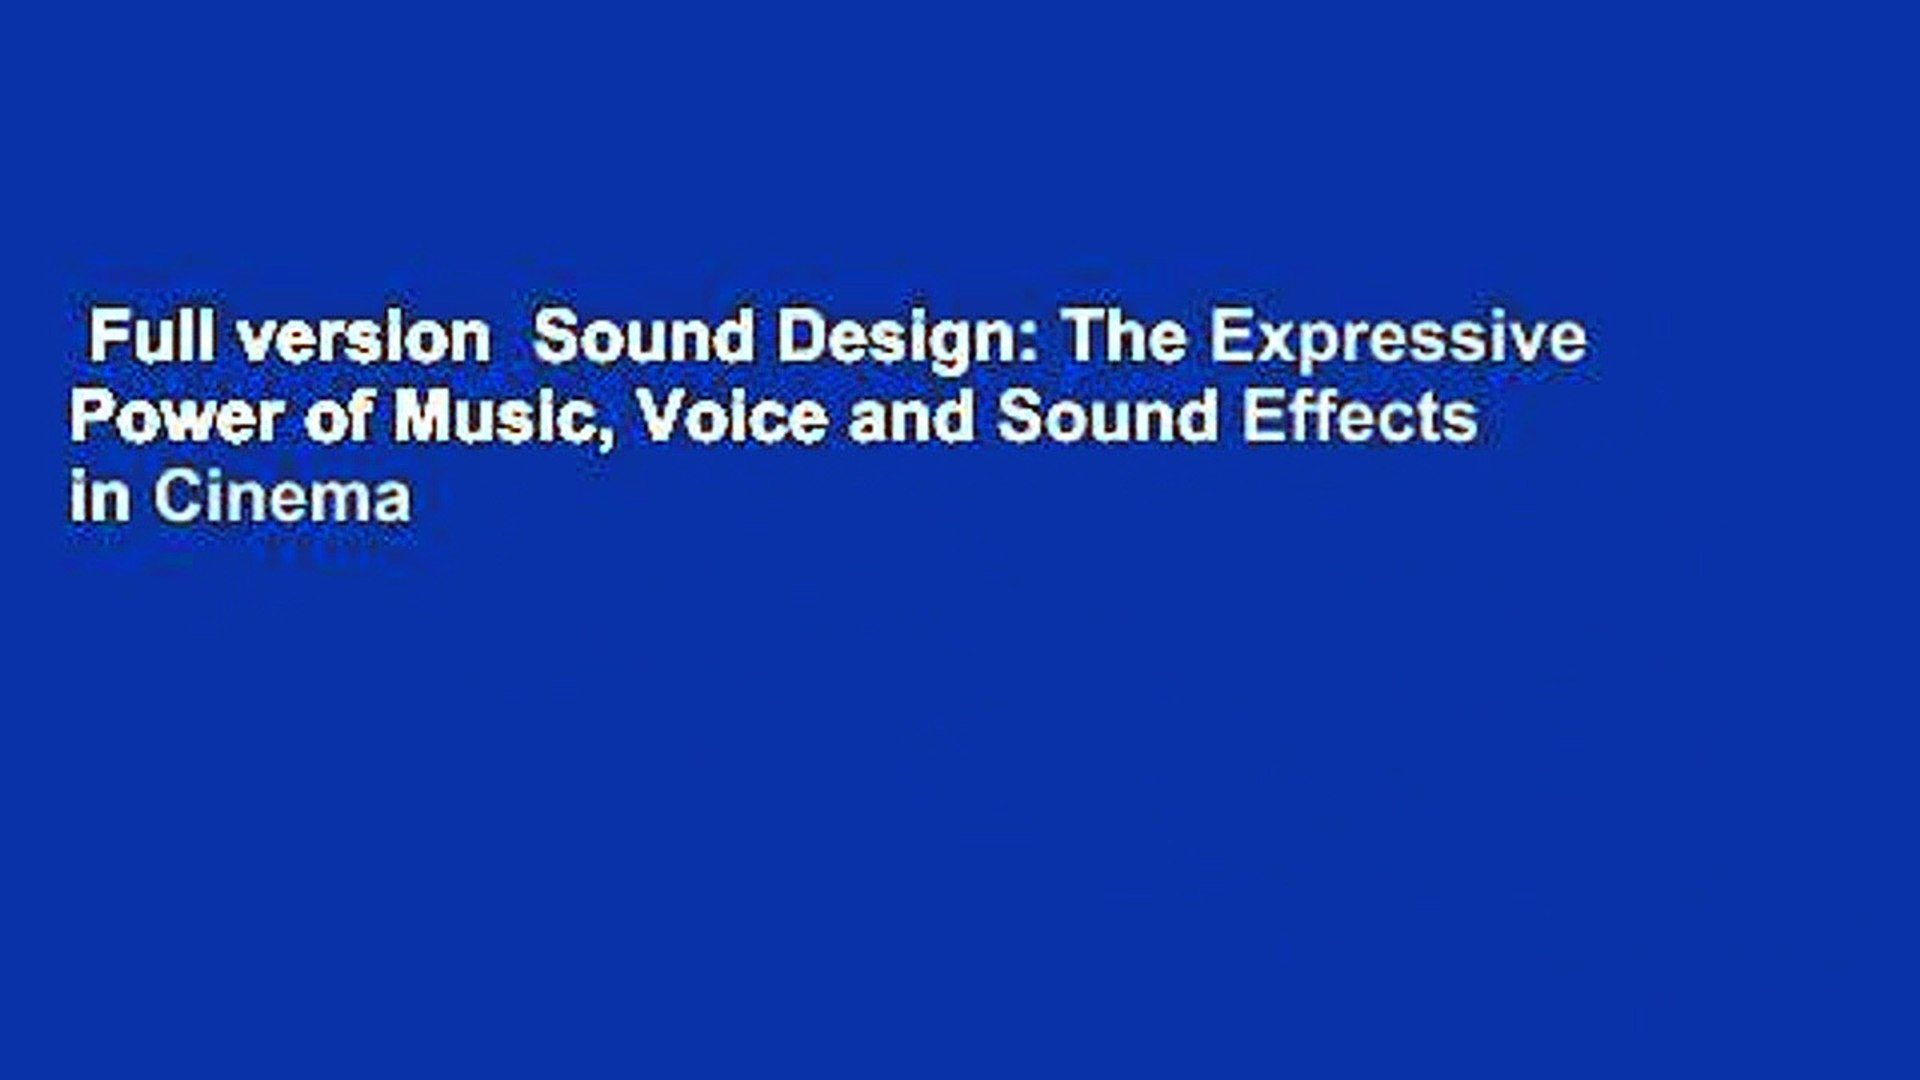 Full version  Sound Design: The Expressive Power of Music, Voice and Sound Effects in Cinema